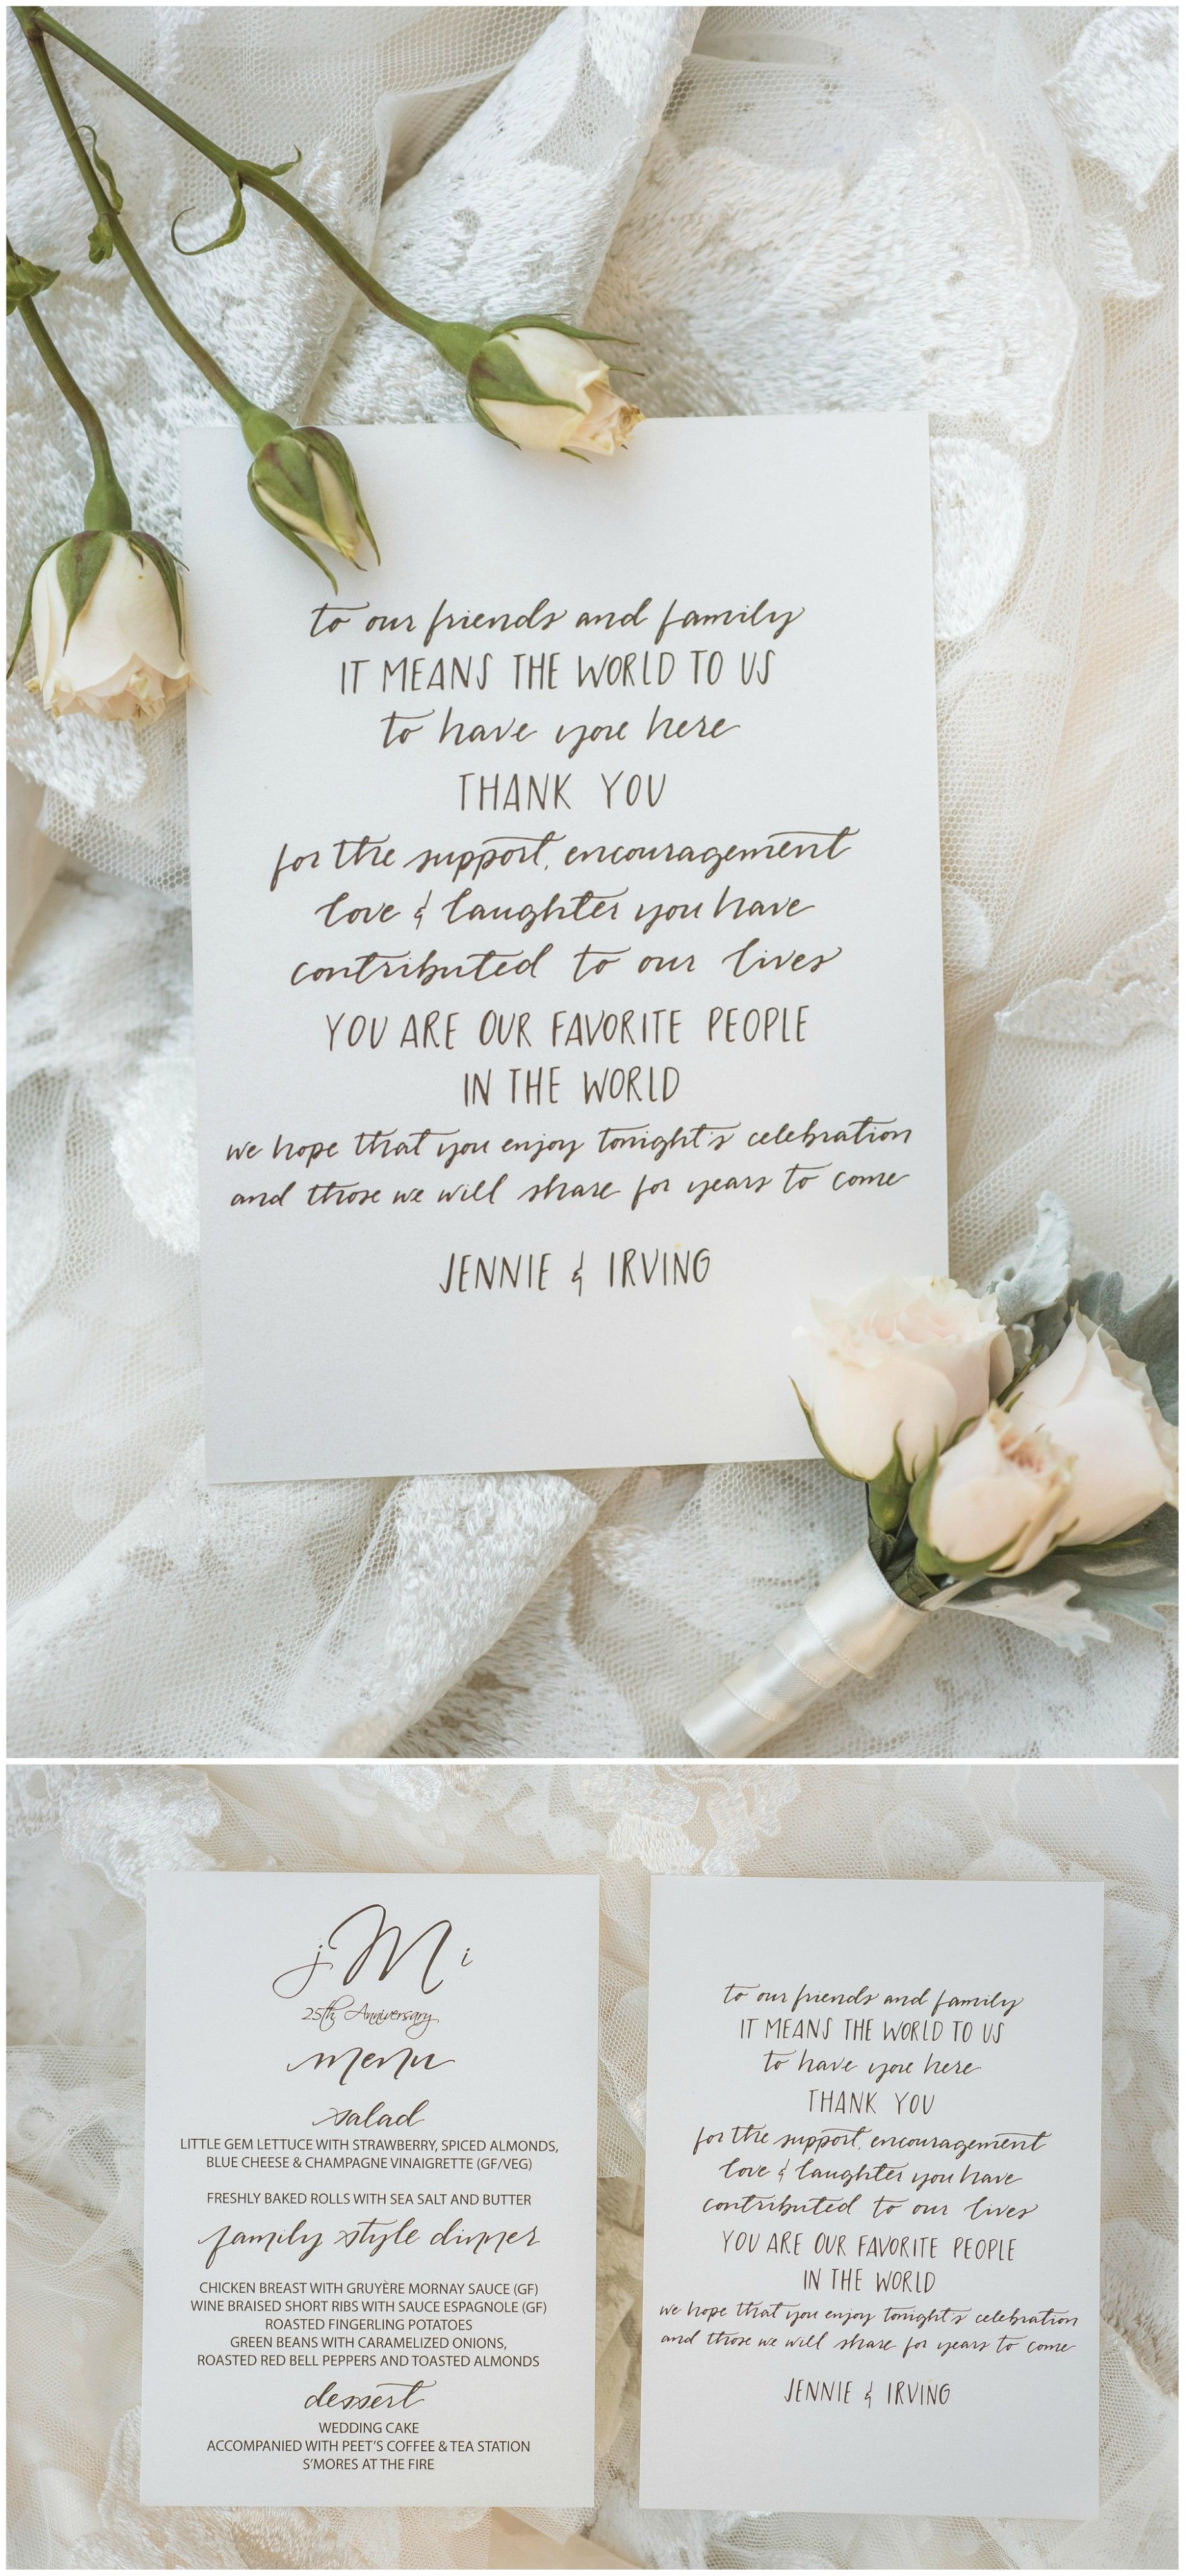 The Smarter Way To Wed Classic Weddings Invitation Suite And Real